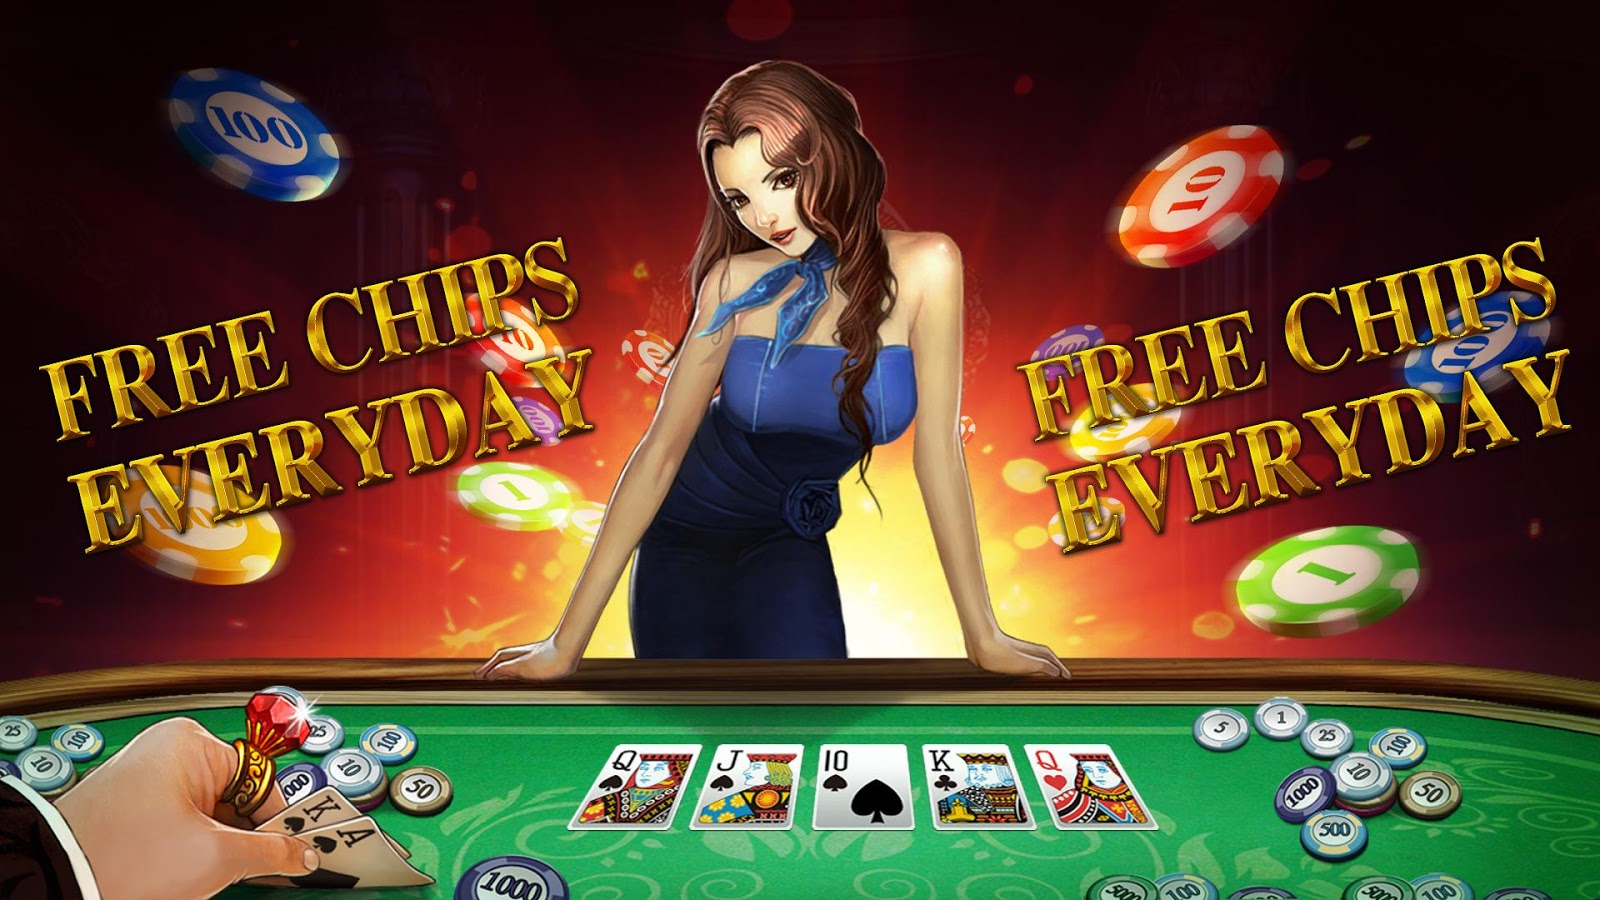 Screenshots of DH Texas Poker - Texas Hold'em for iPhone